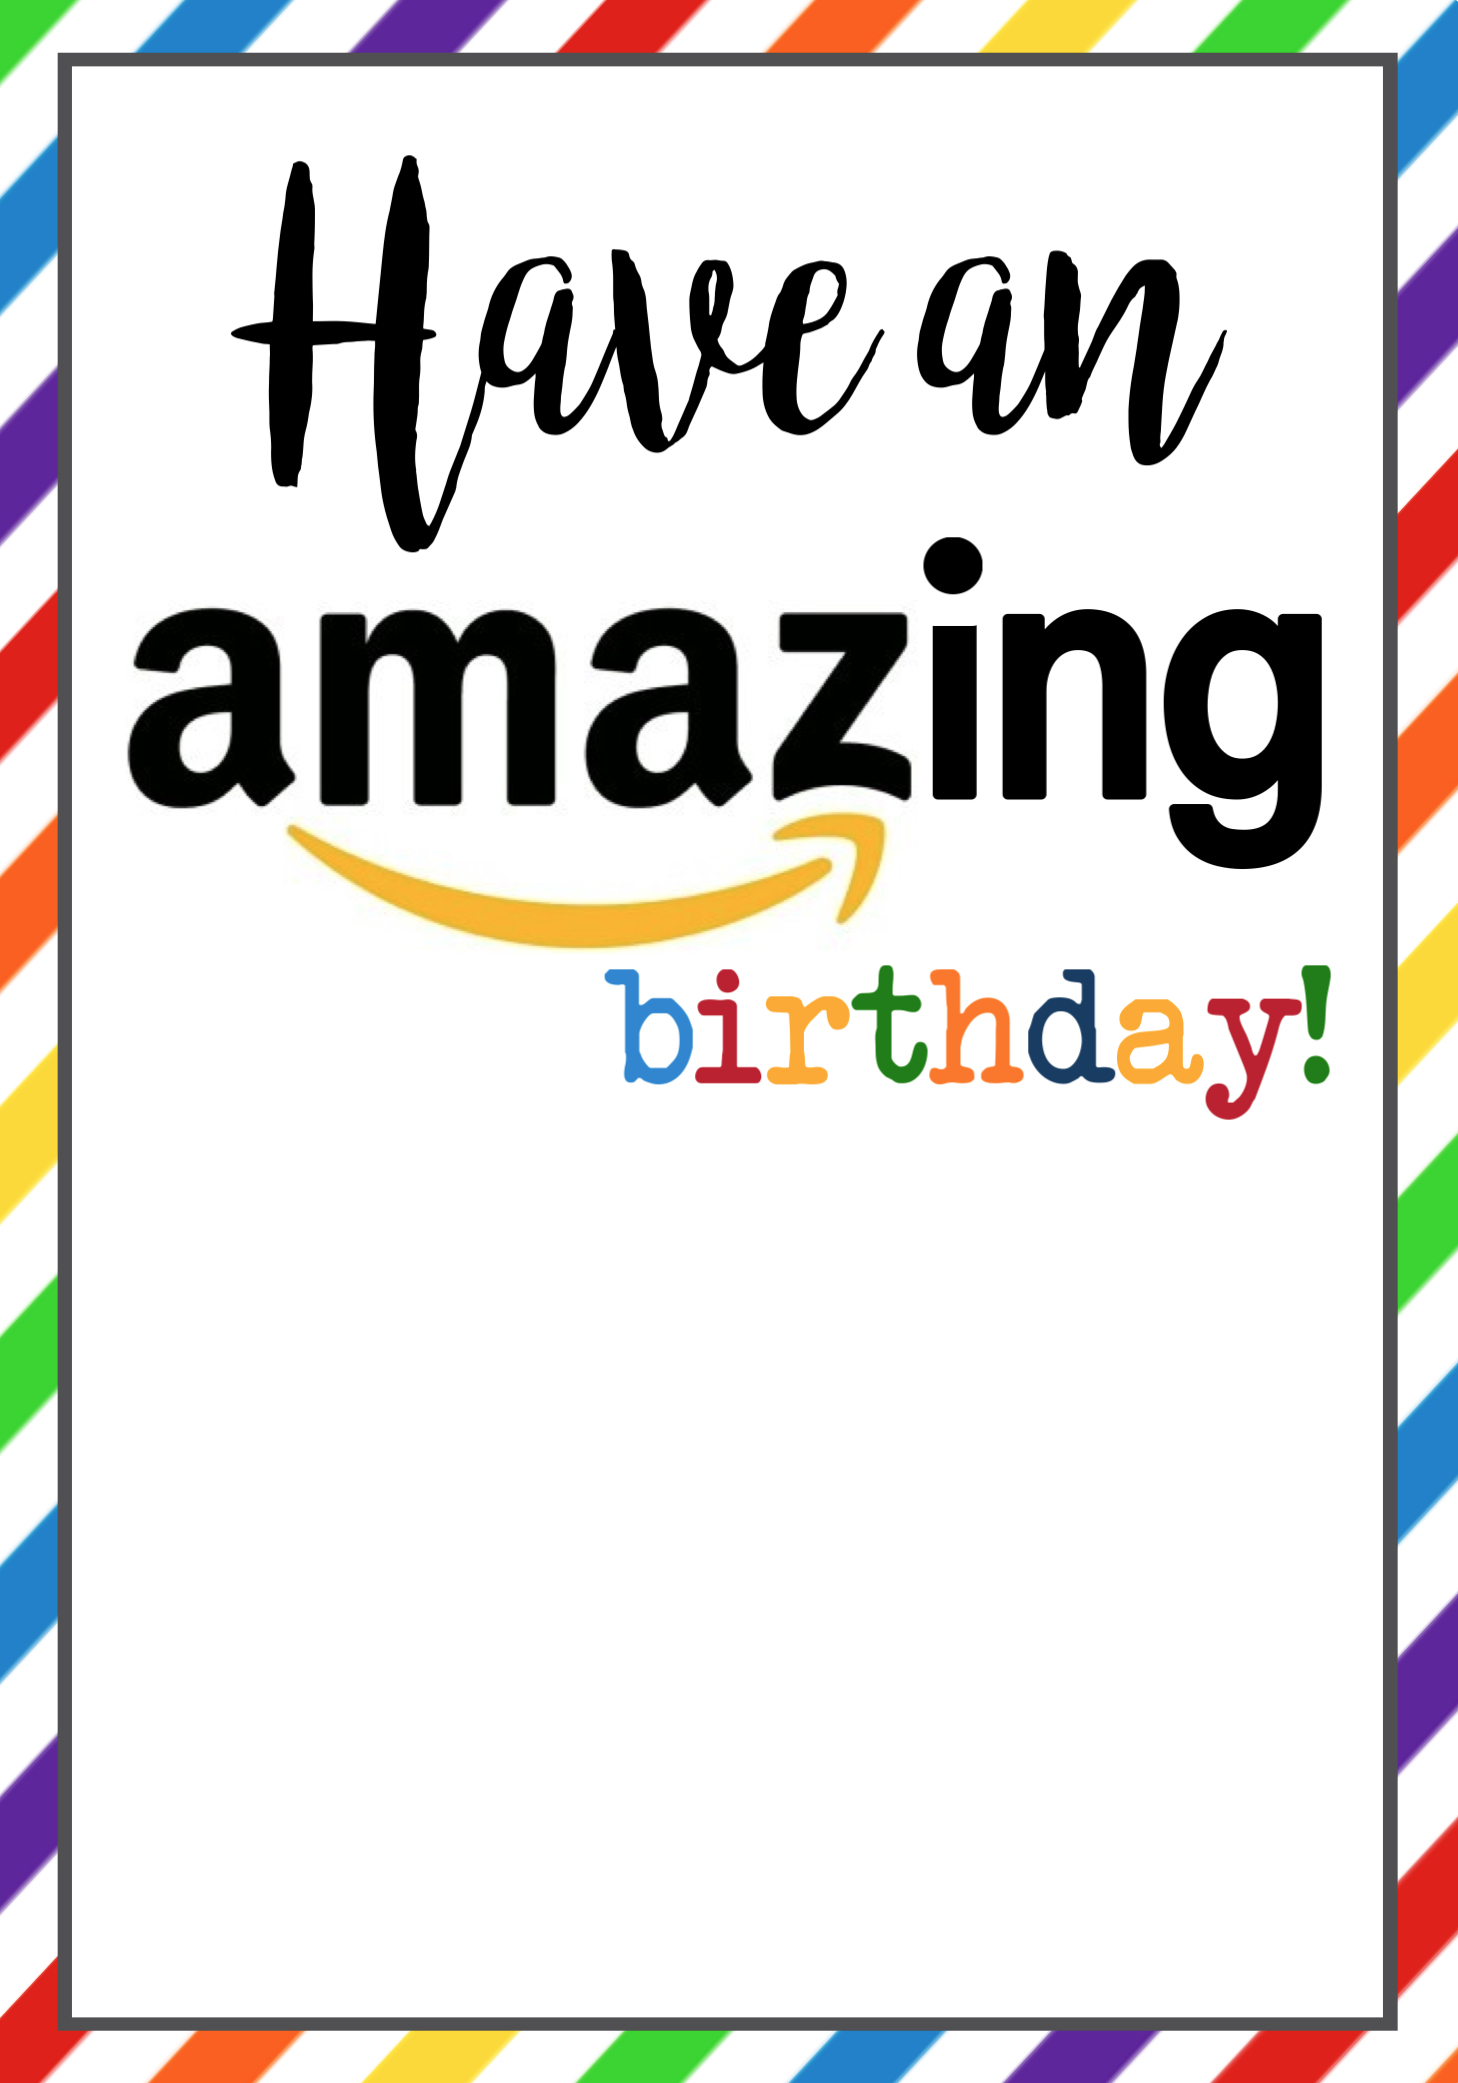 photograph regarding Amazon Printable Gift Card identified as Amazon Birthday Playing cards Totally free Printable - Paper Path Style and design